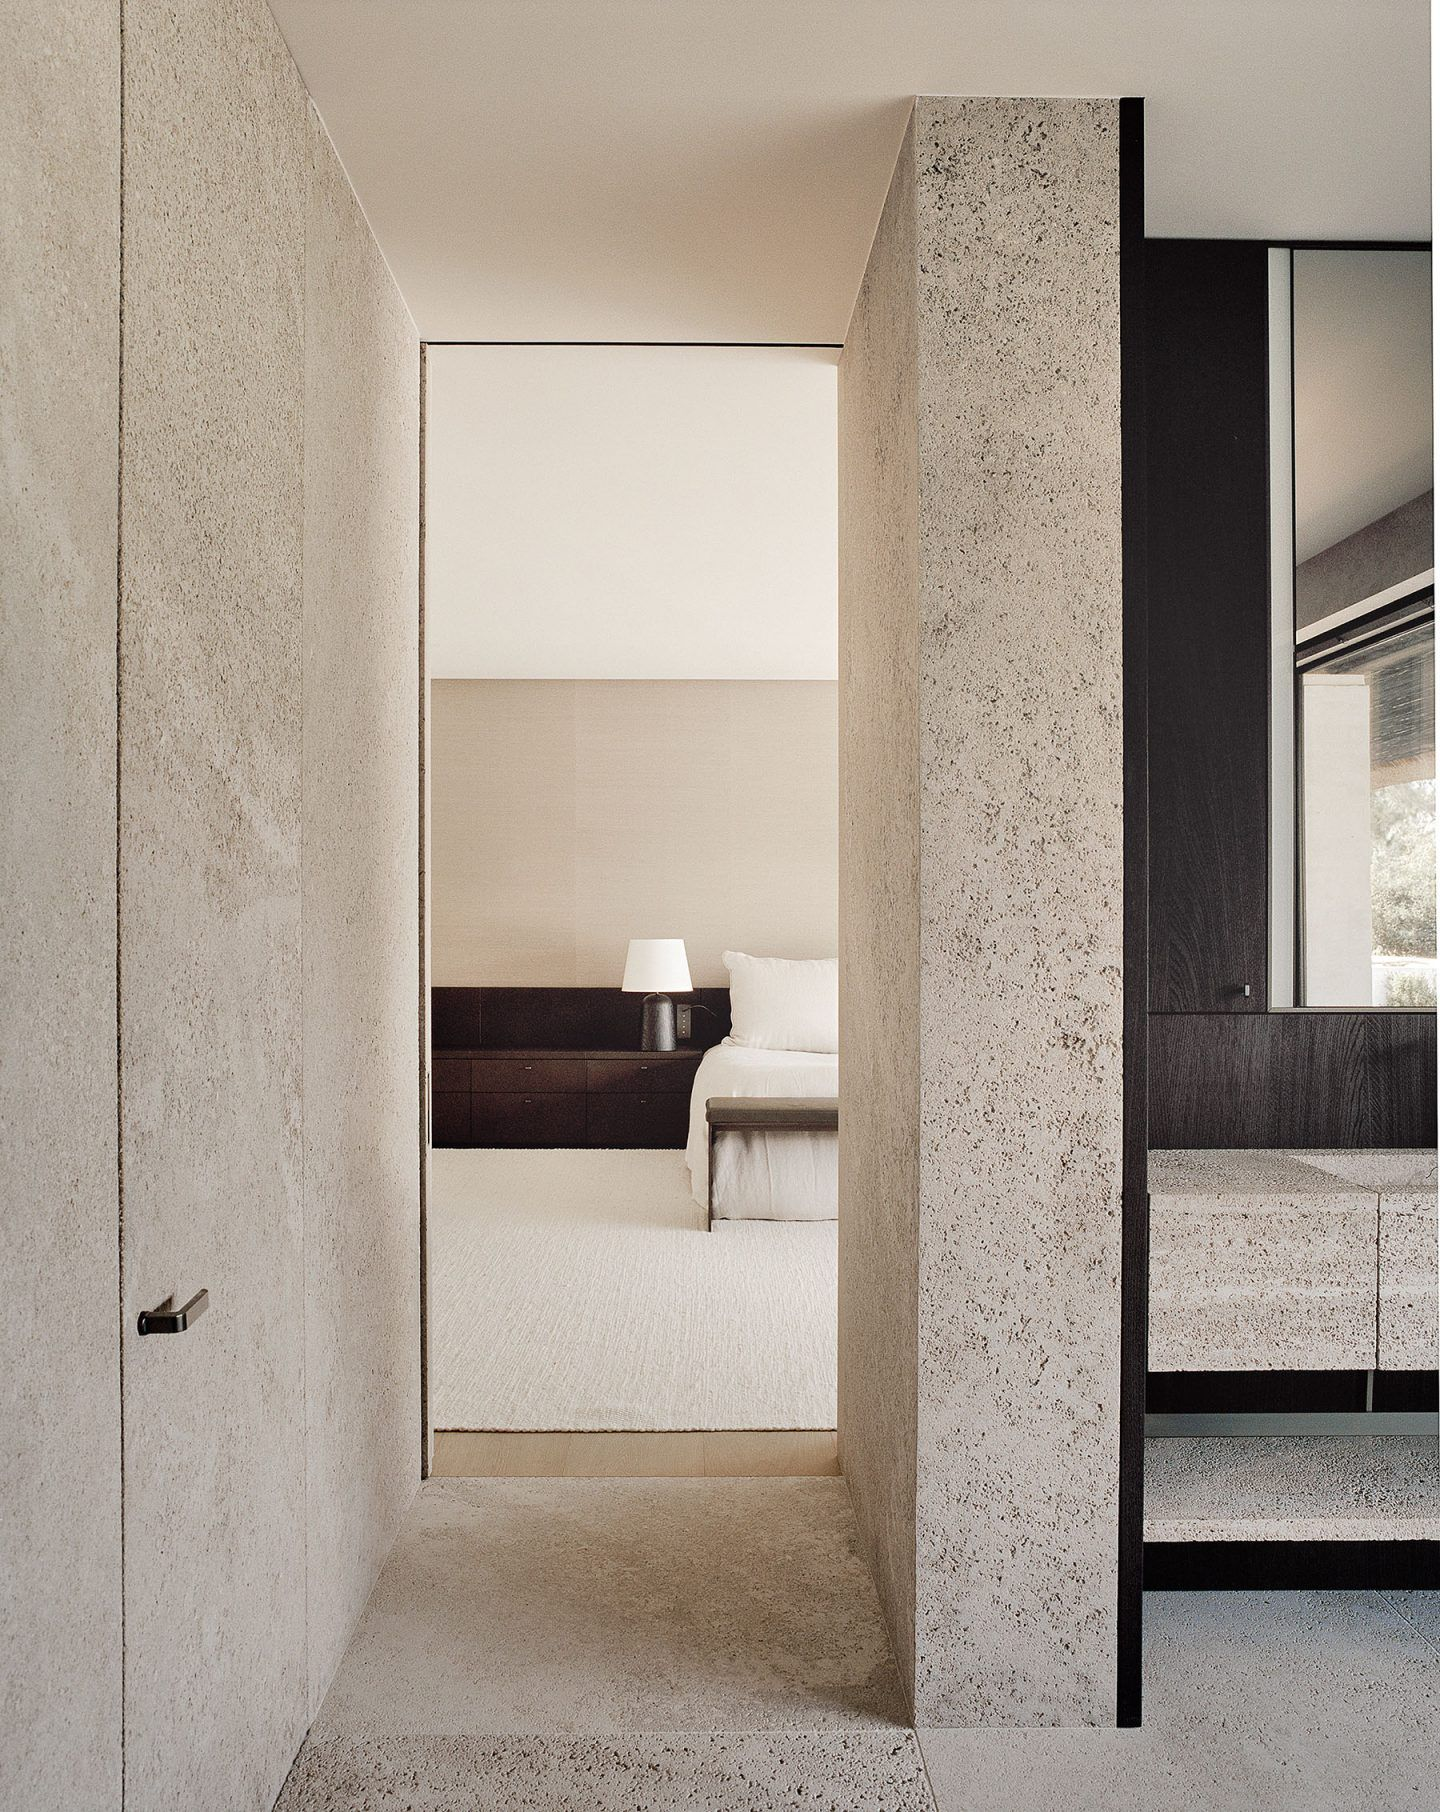 IGNANT-Architecture-Vincent-Van-Duysen-VO-Residence-08